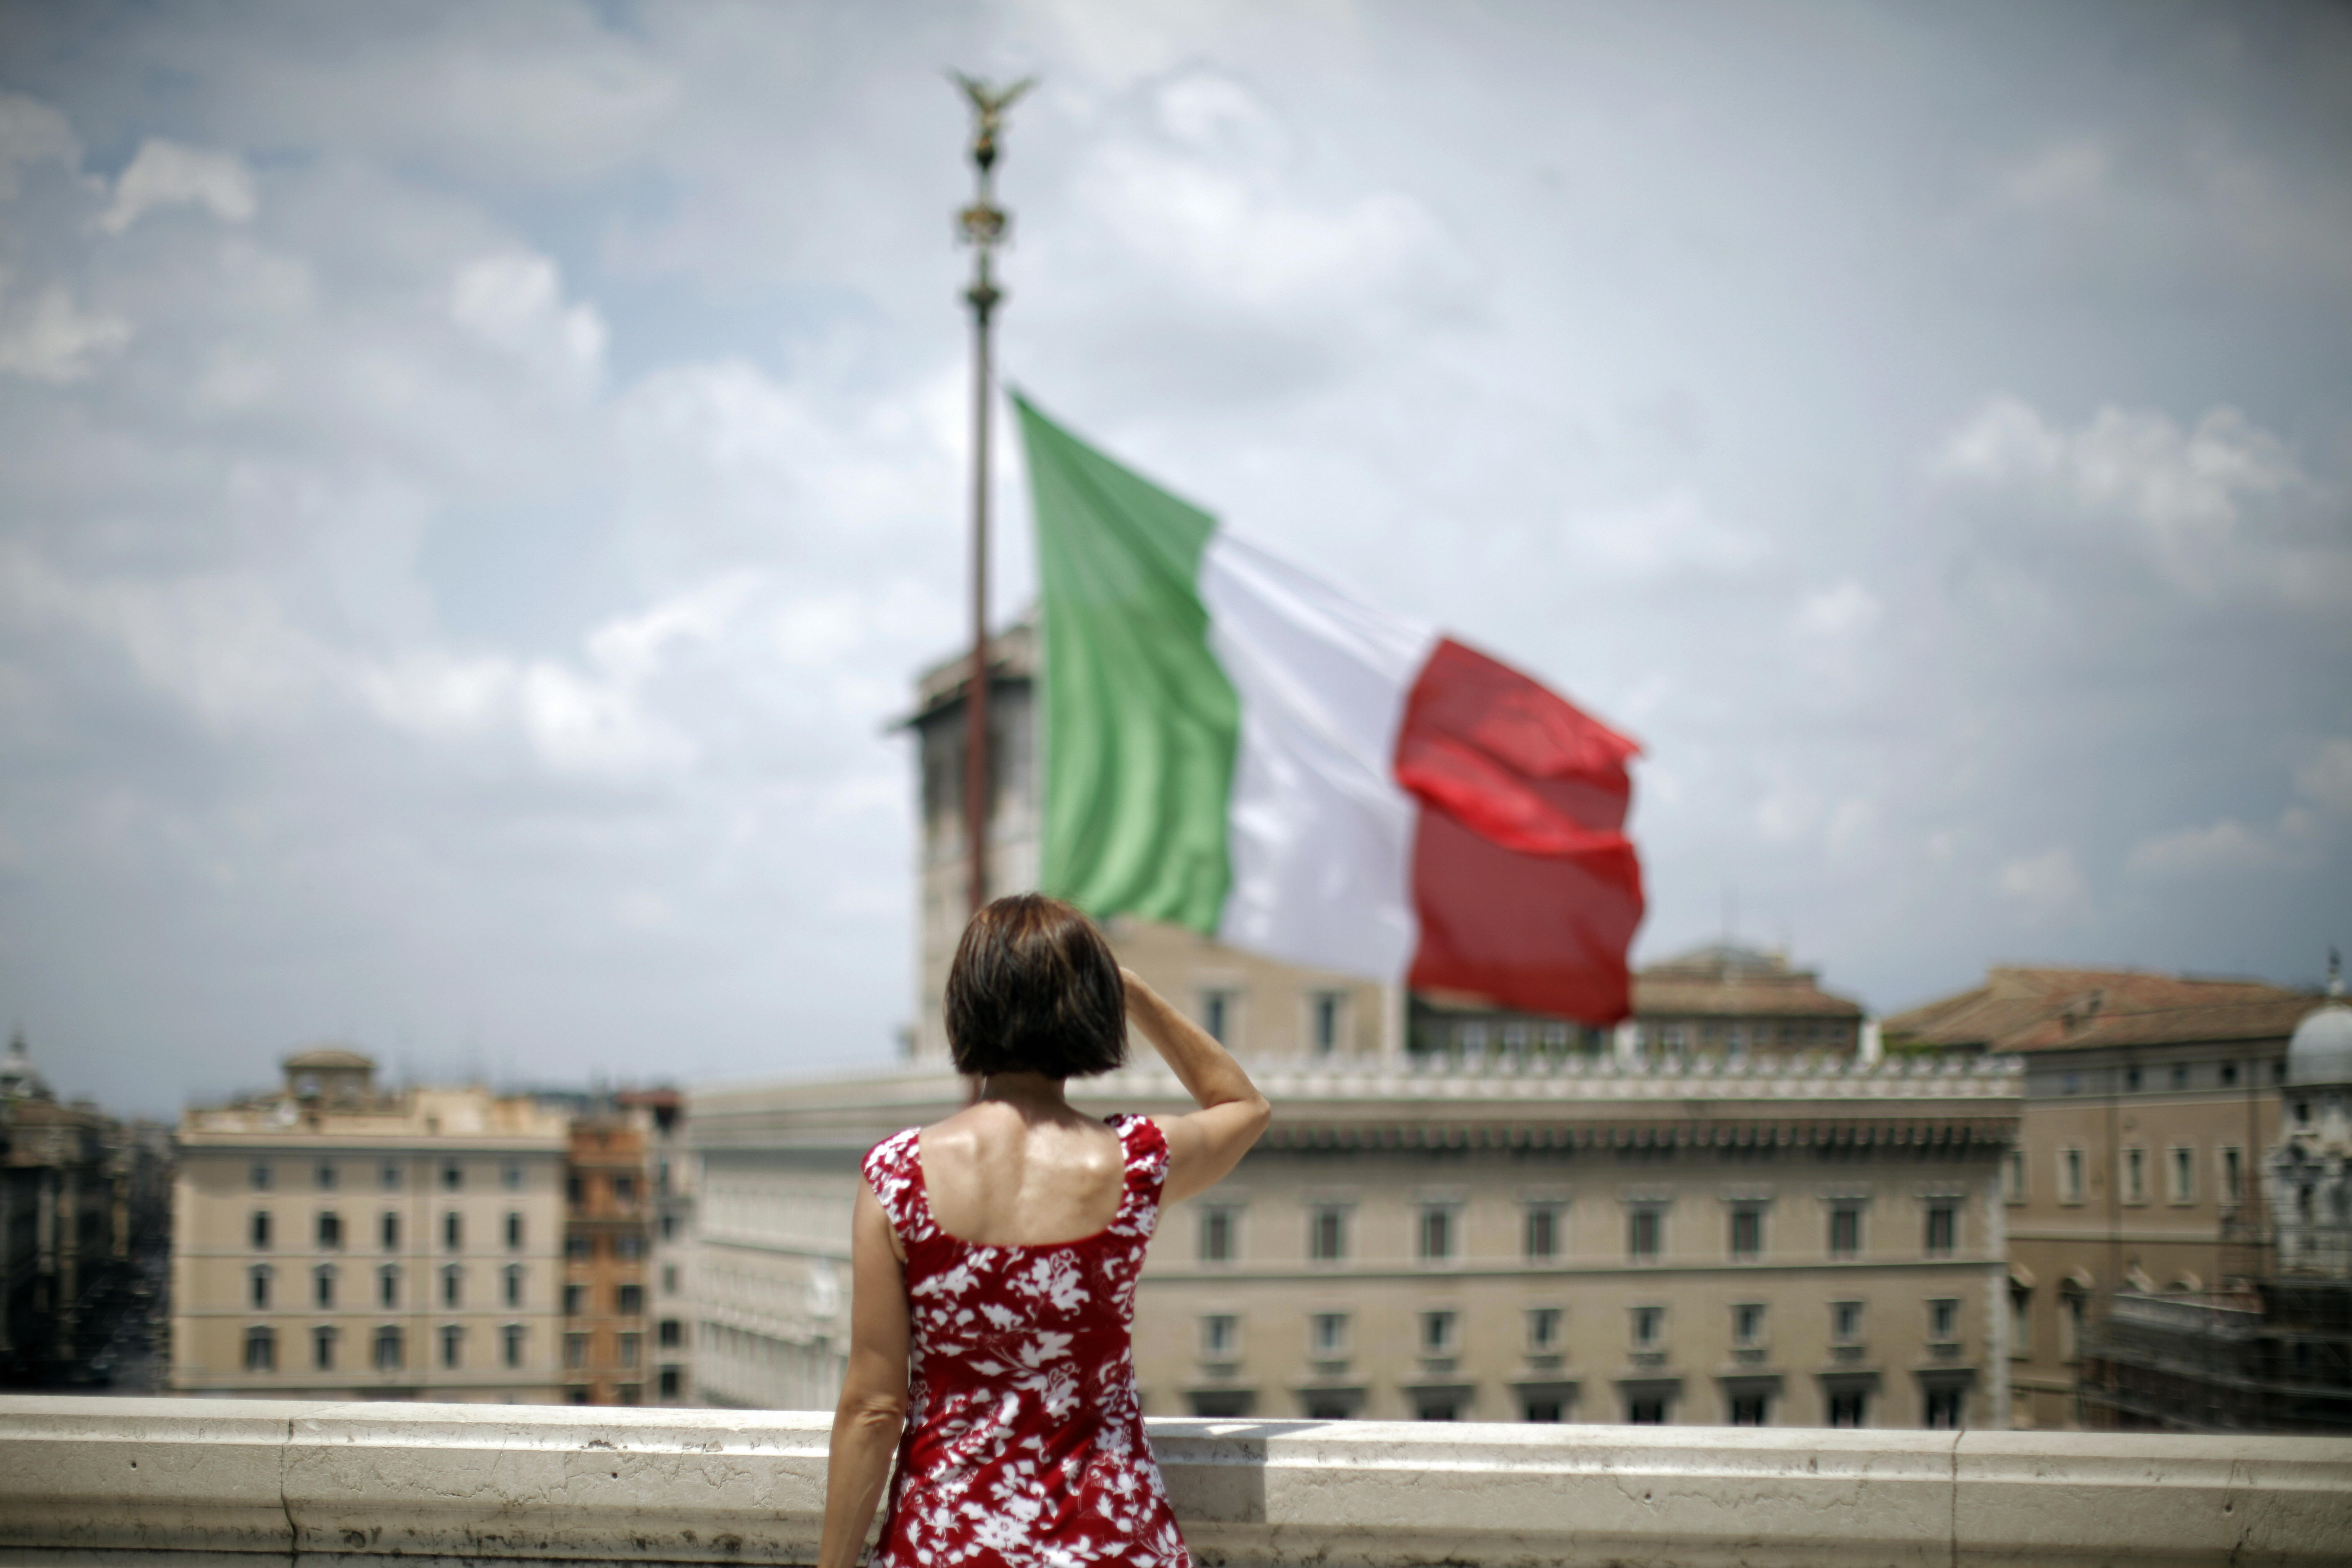 A woman stands in front of a waving Ital